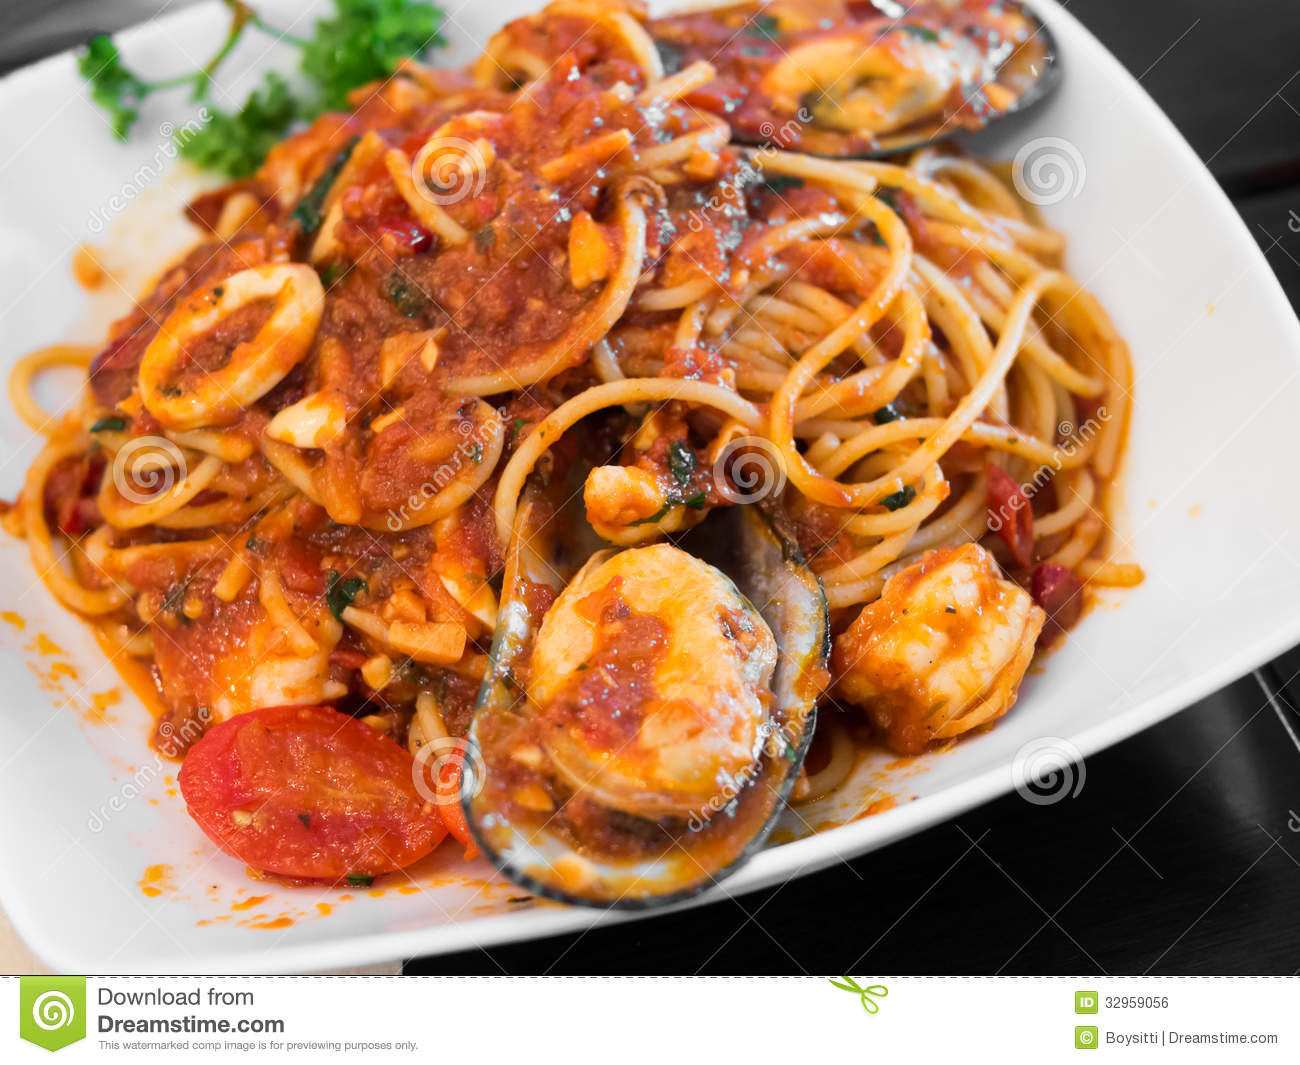 Spaghetti With Mussels And Tomato Sauce Royalty Free Stock Image ...